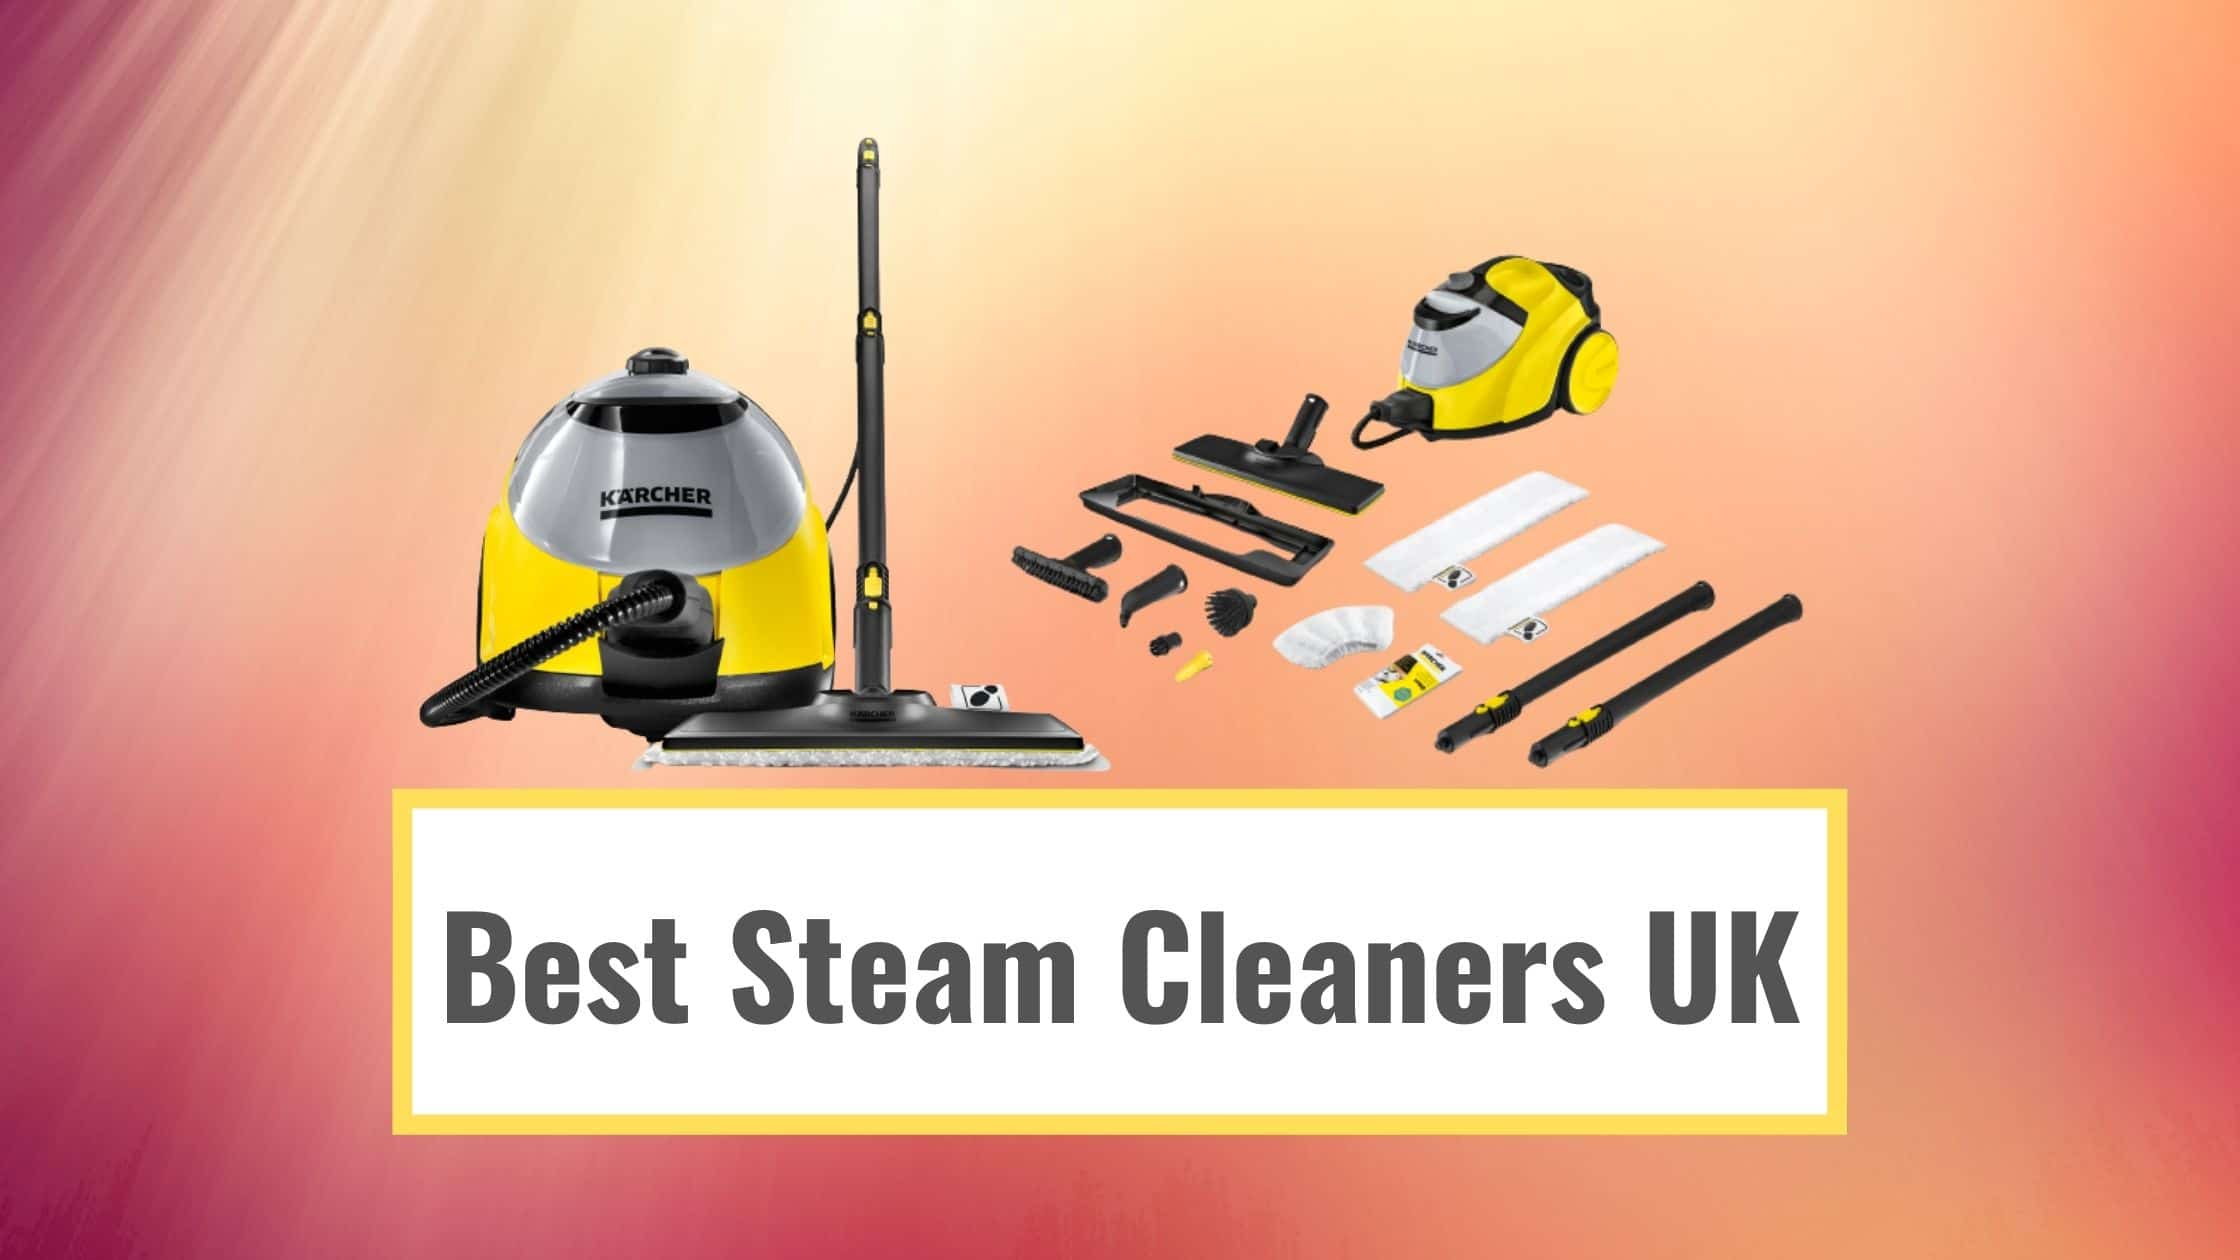 Best Steam Cleaners UK